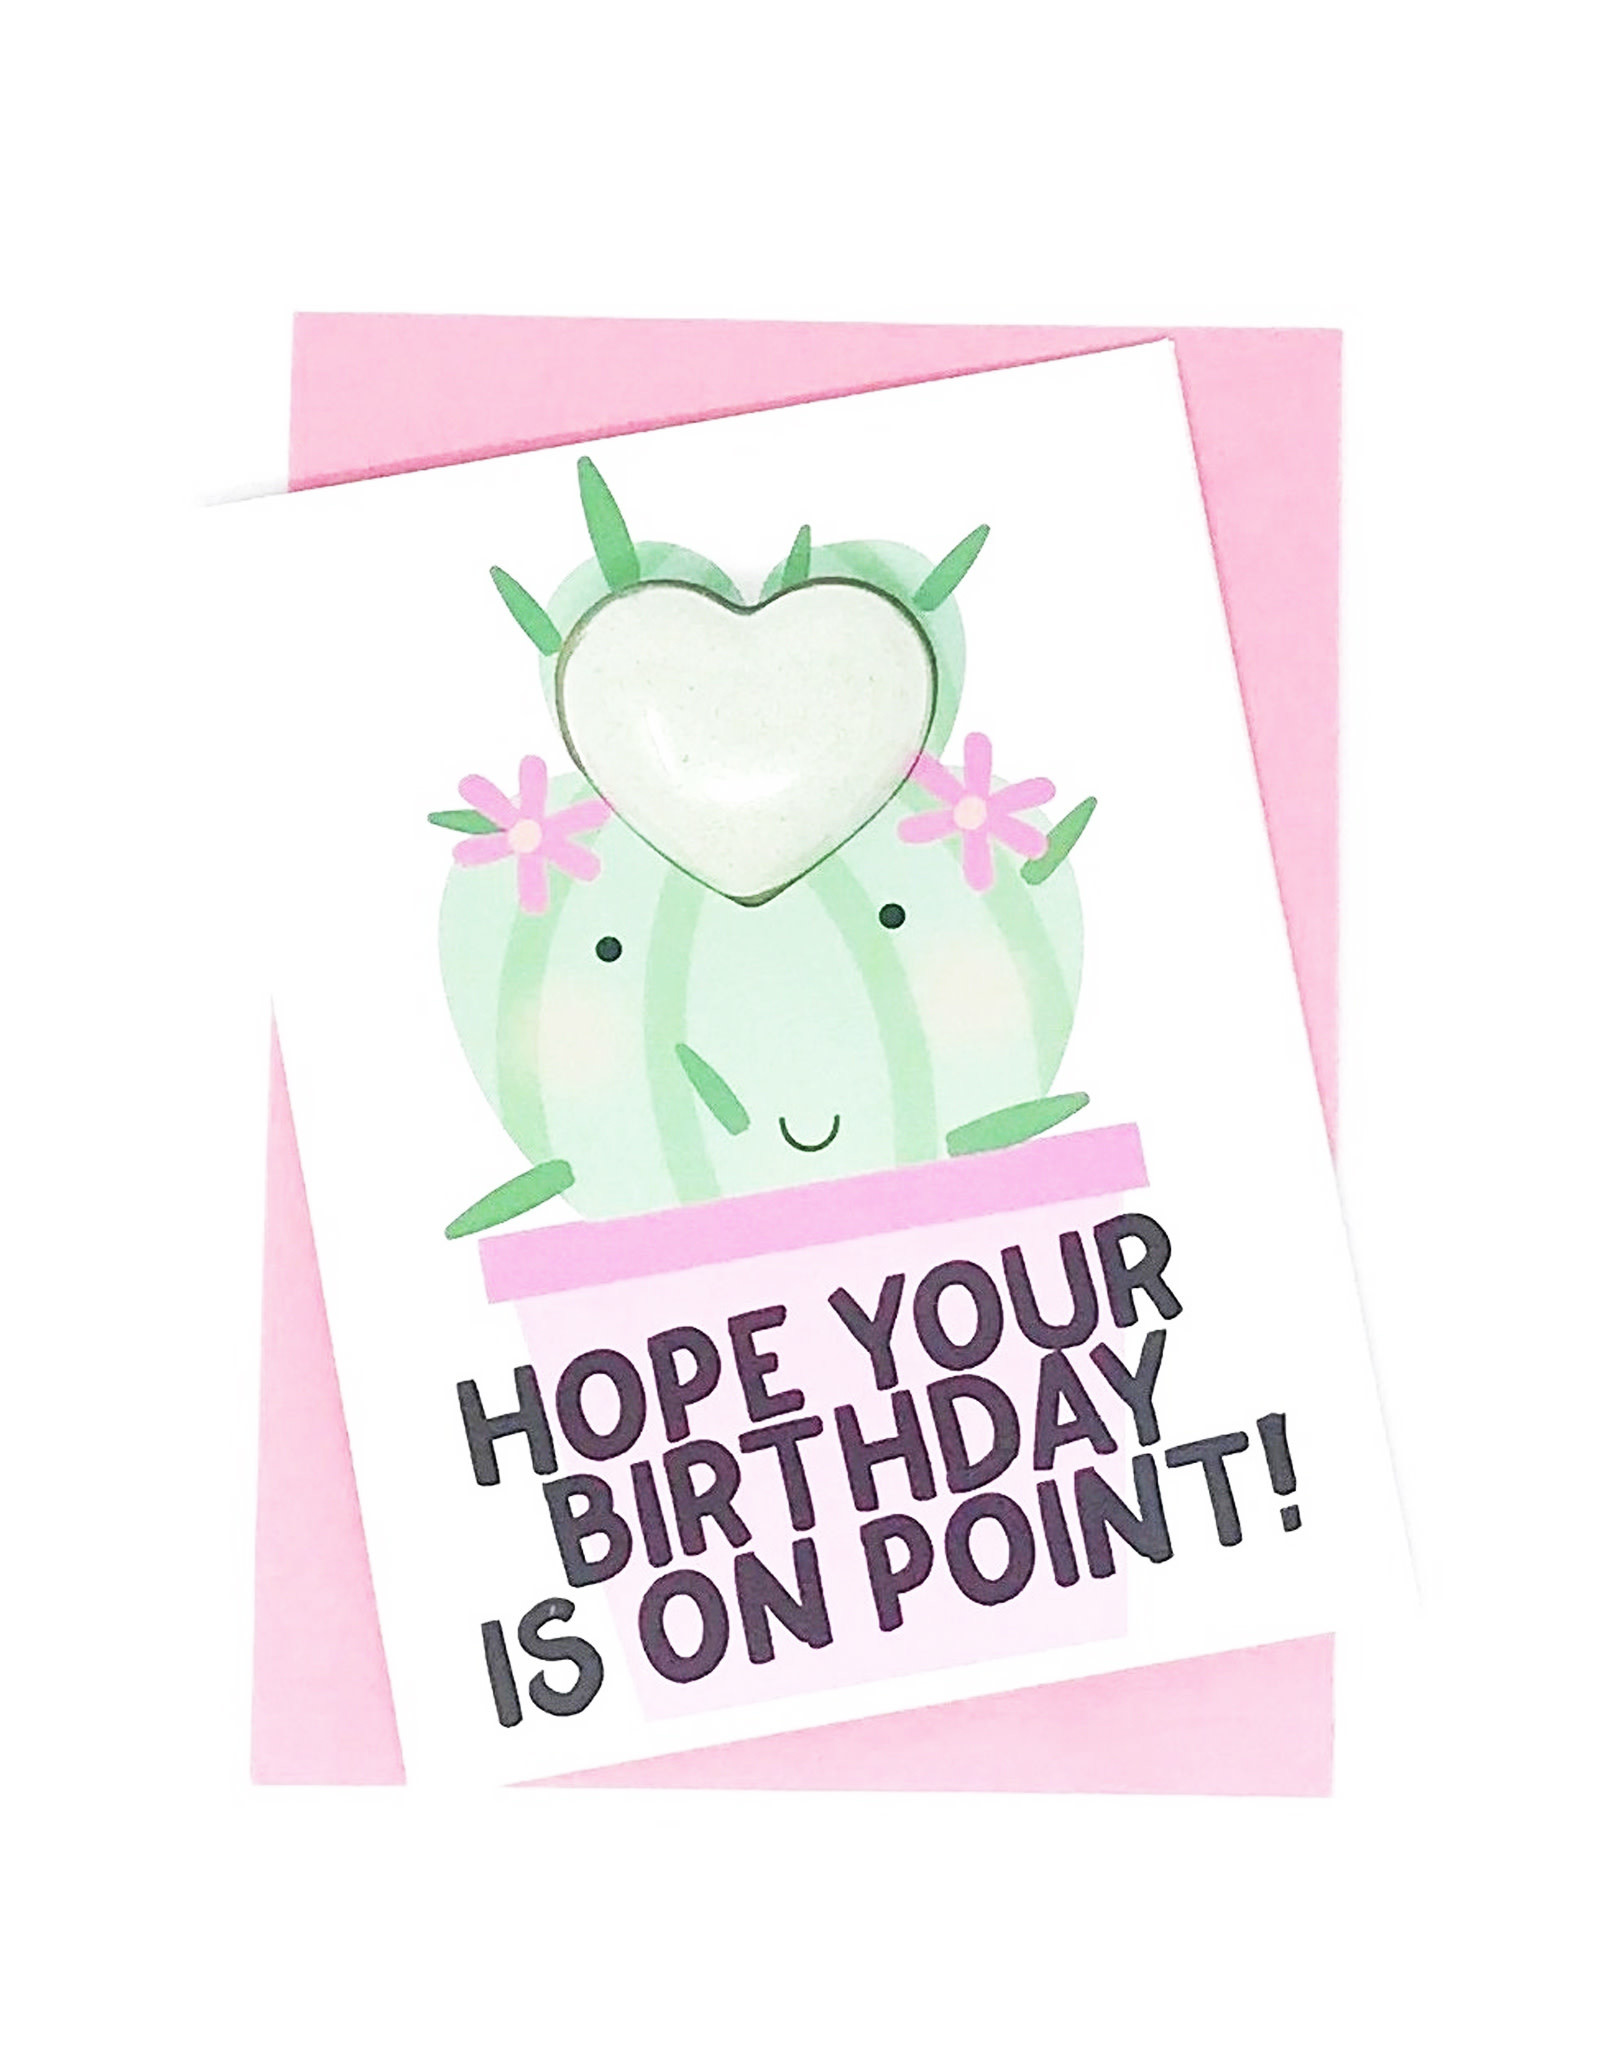 Feeling Smitten Hope Your Birthday is On Point! Bath Card